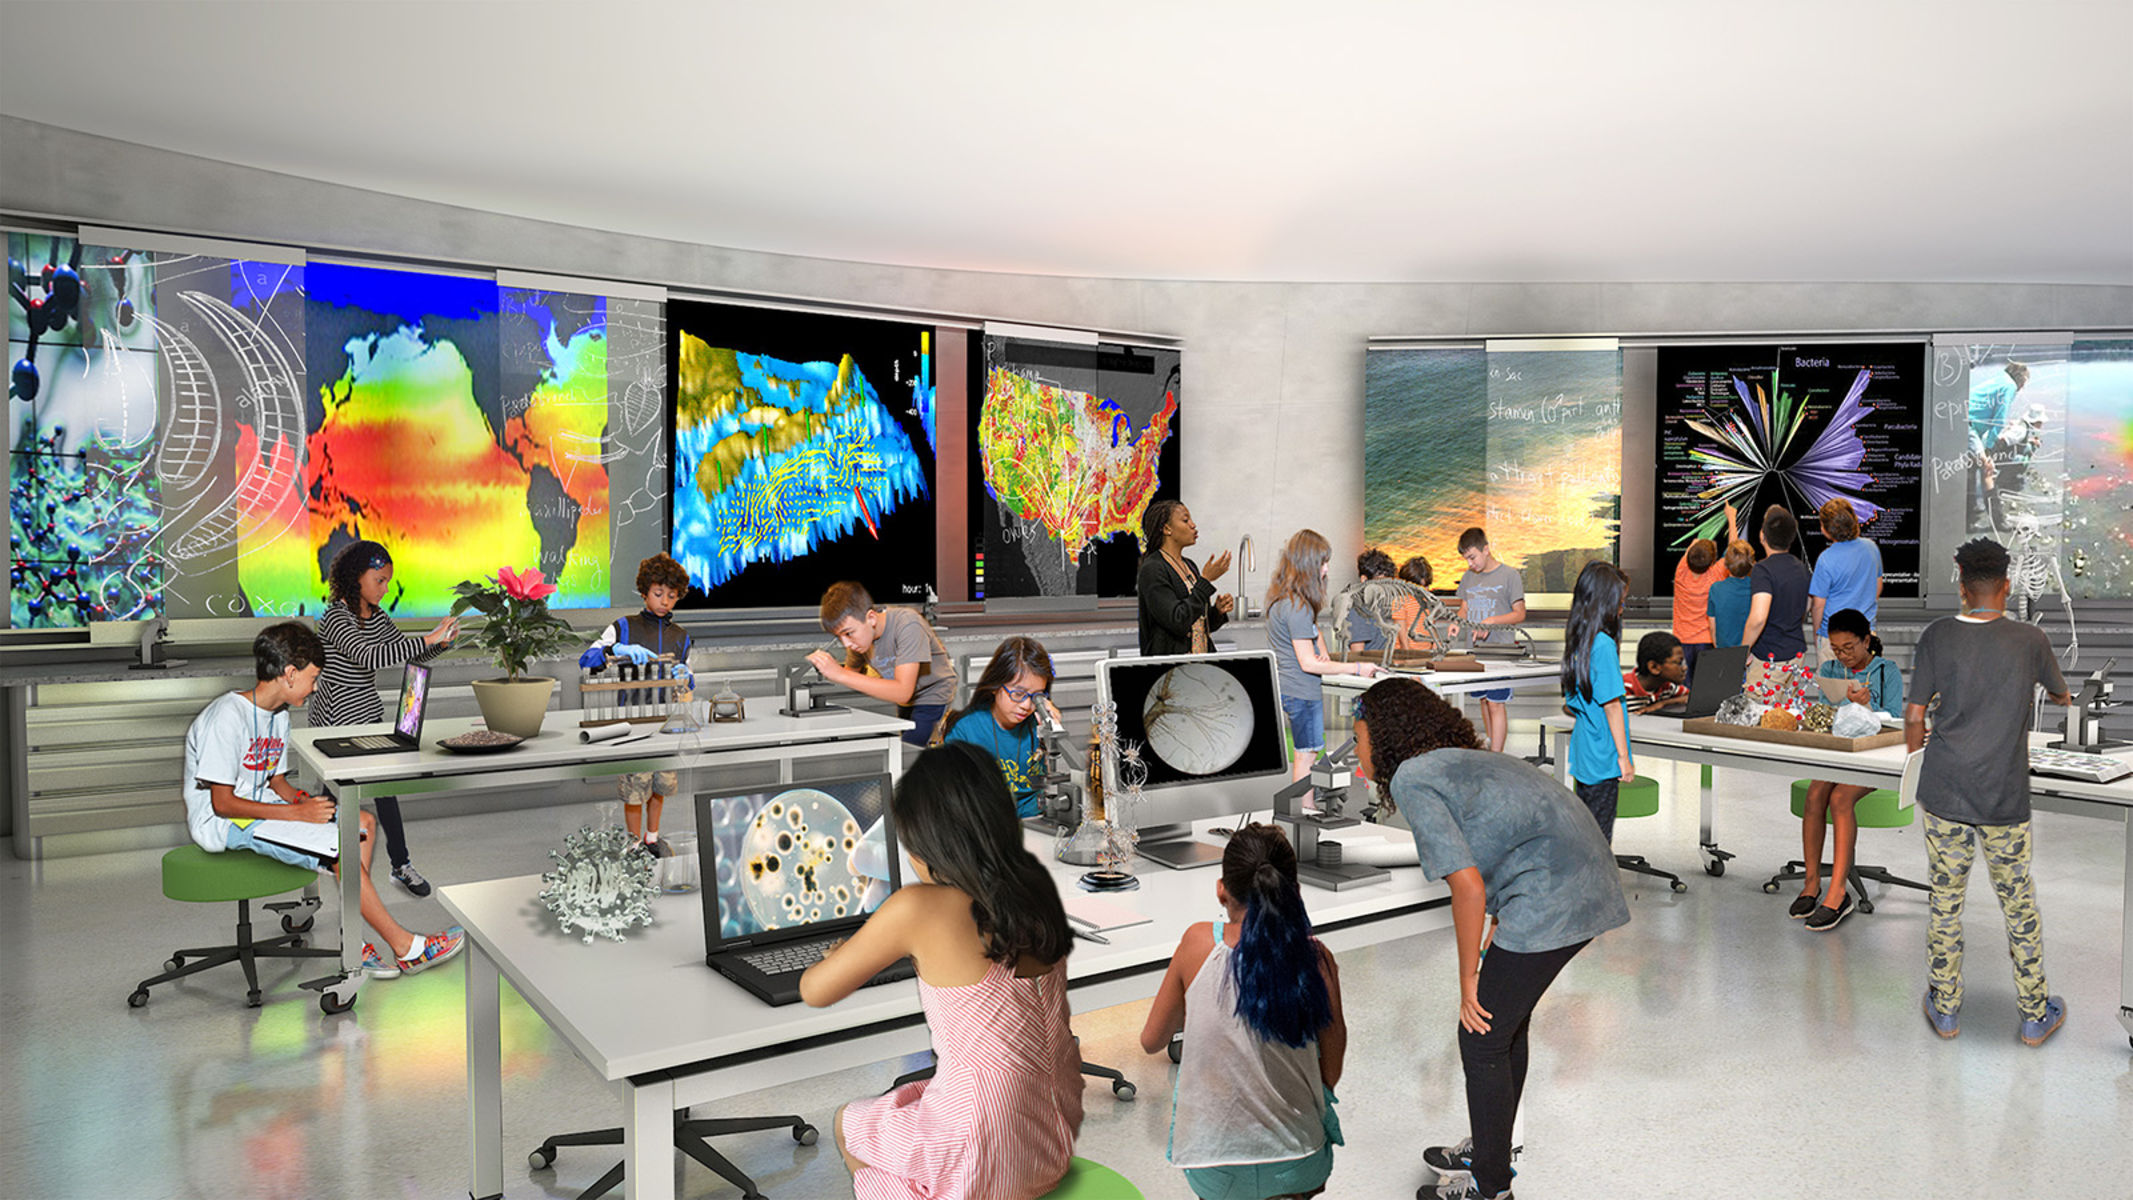 Rendering shows an open space with students and teachers surrounded by desktop and wall-mounted digital screens displaying bright visuals.